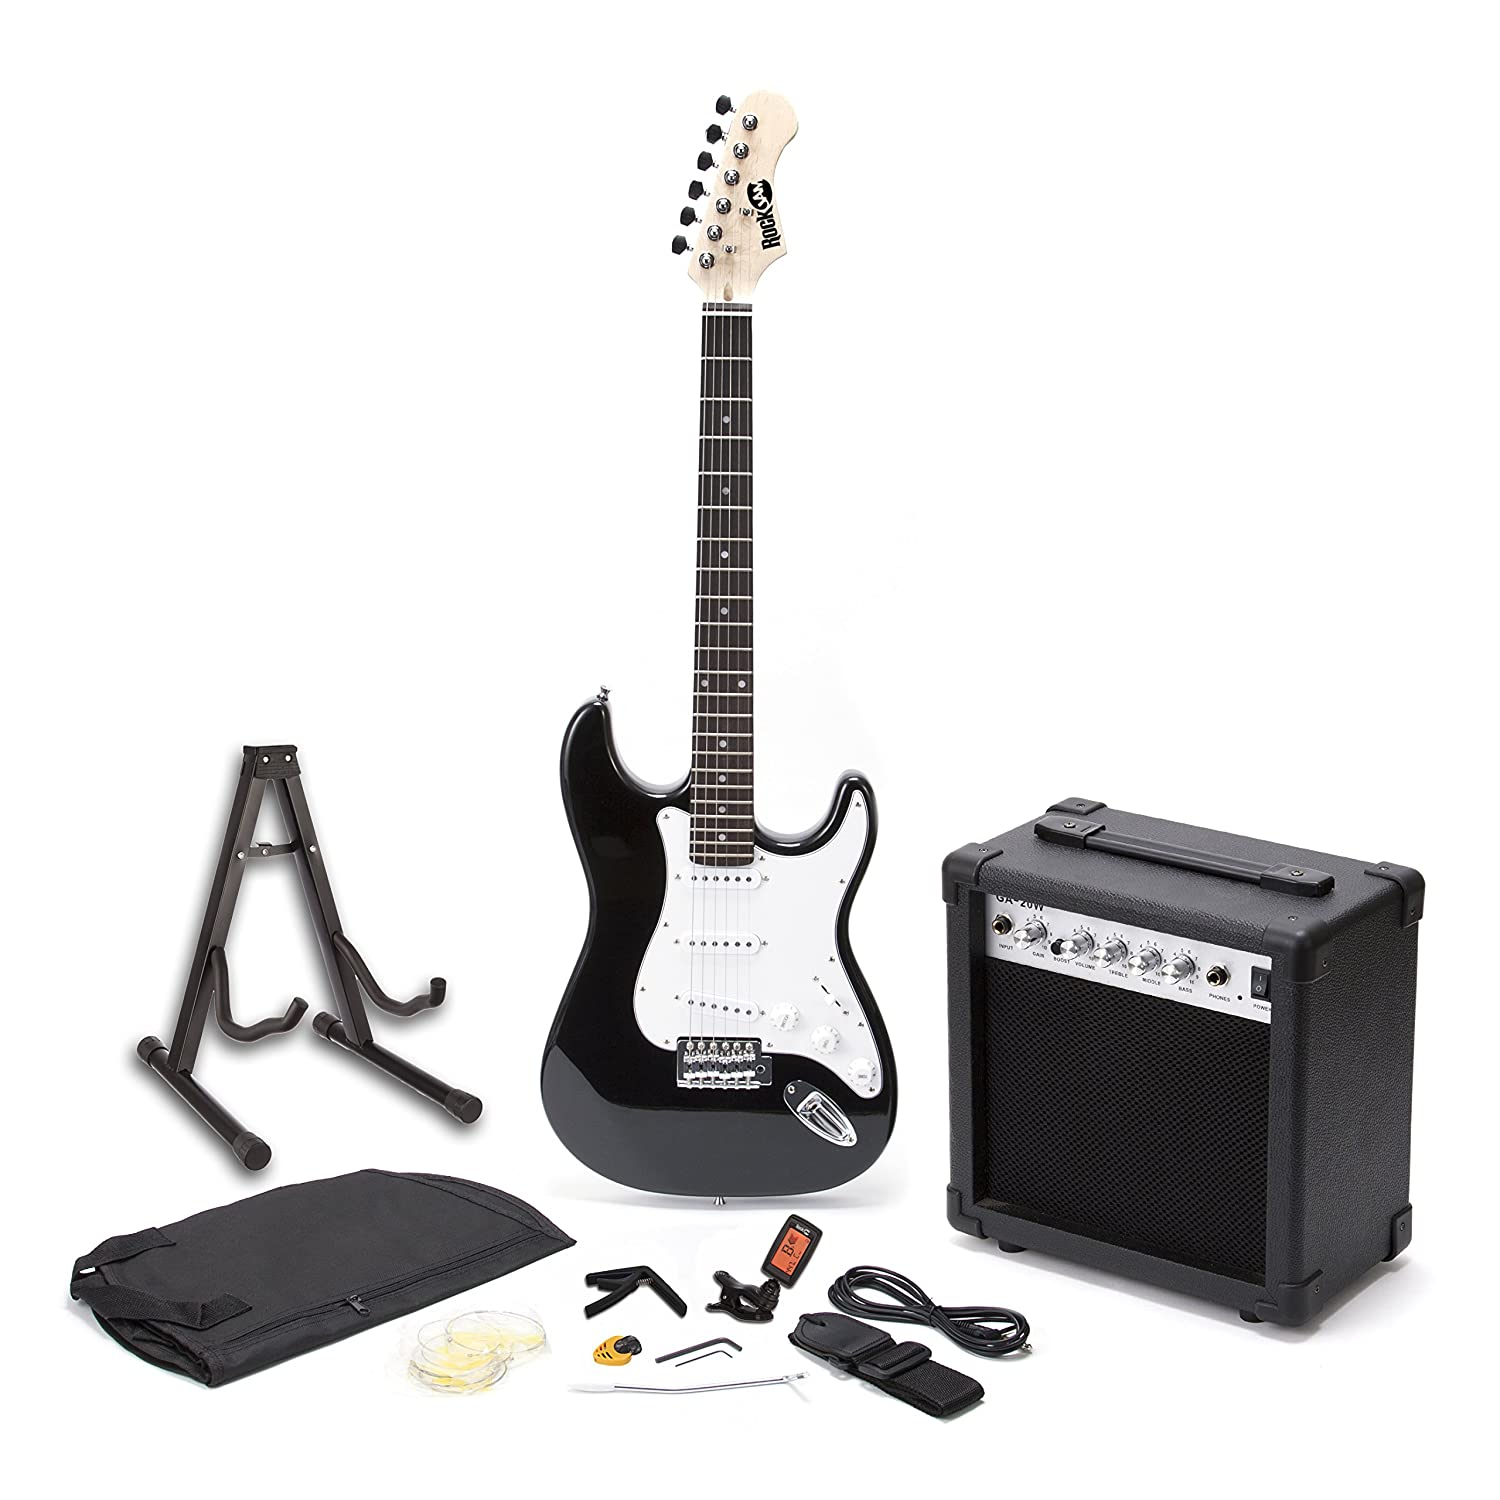 rockjam full size electric guitar superkit with 20